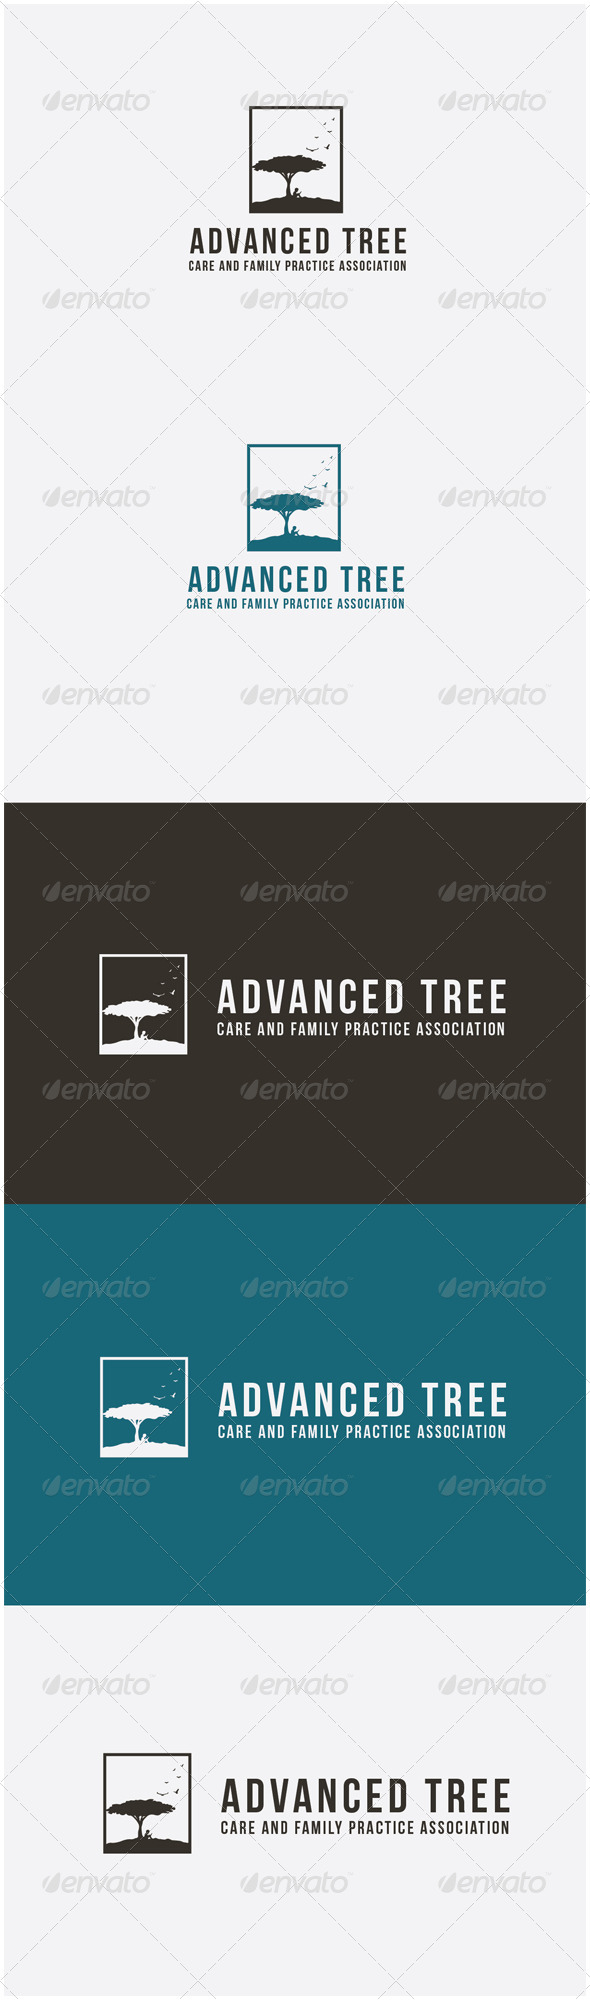 GraphicRiver Advanced Tree 6055955